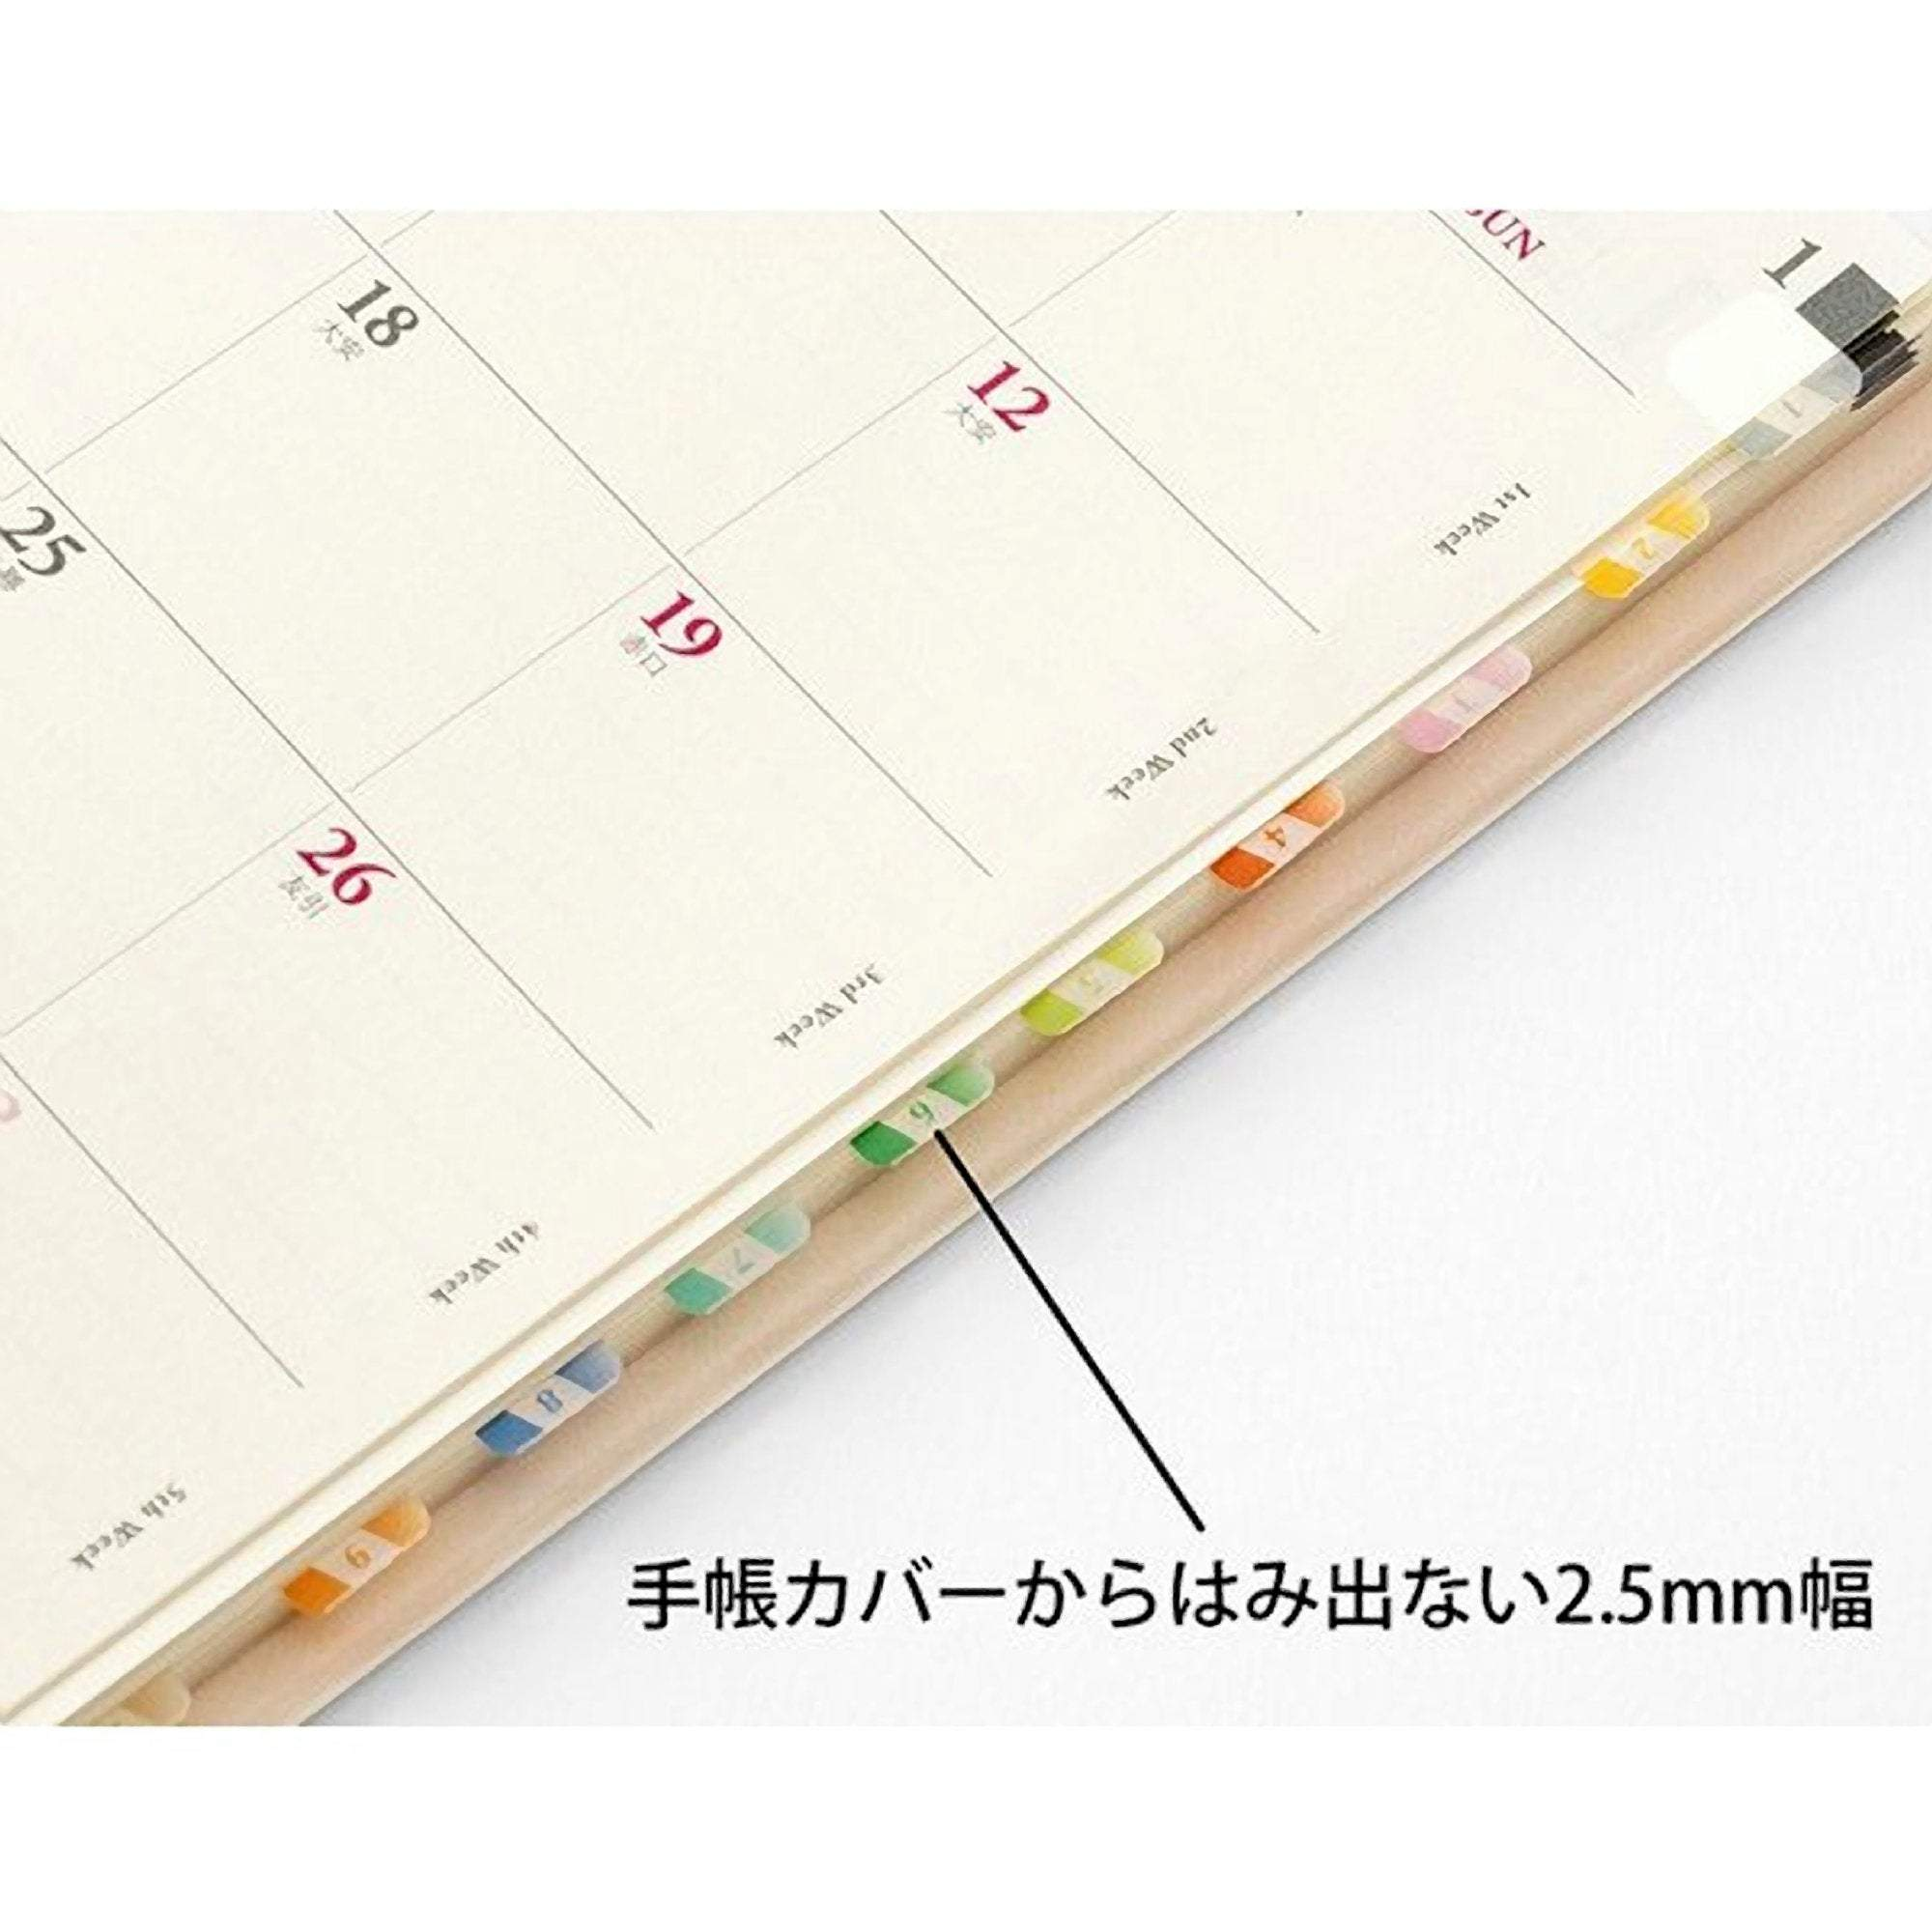 MIDORI Chiratto Index Label Numbered VIVID Rainbow Colors Planner Index Tabs - The Stationery Life!